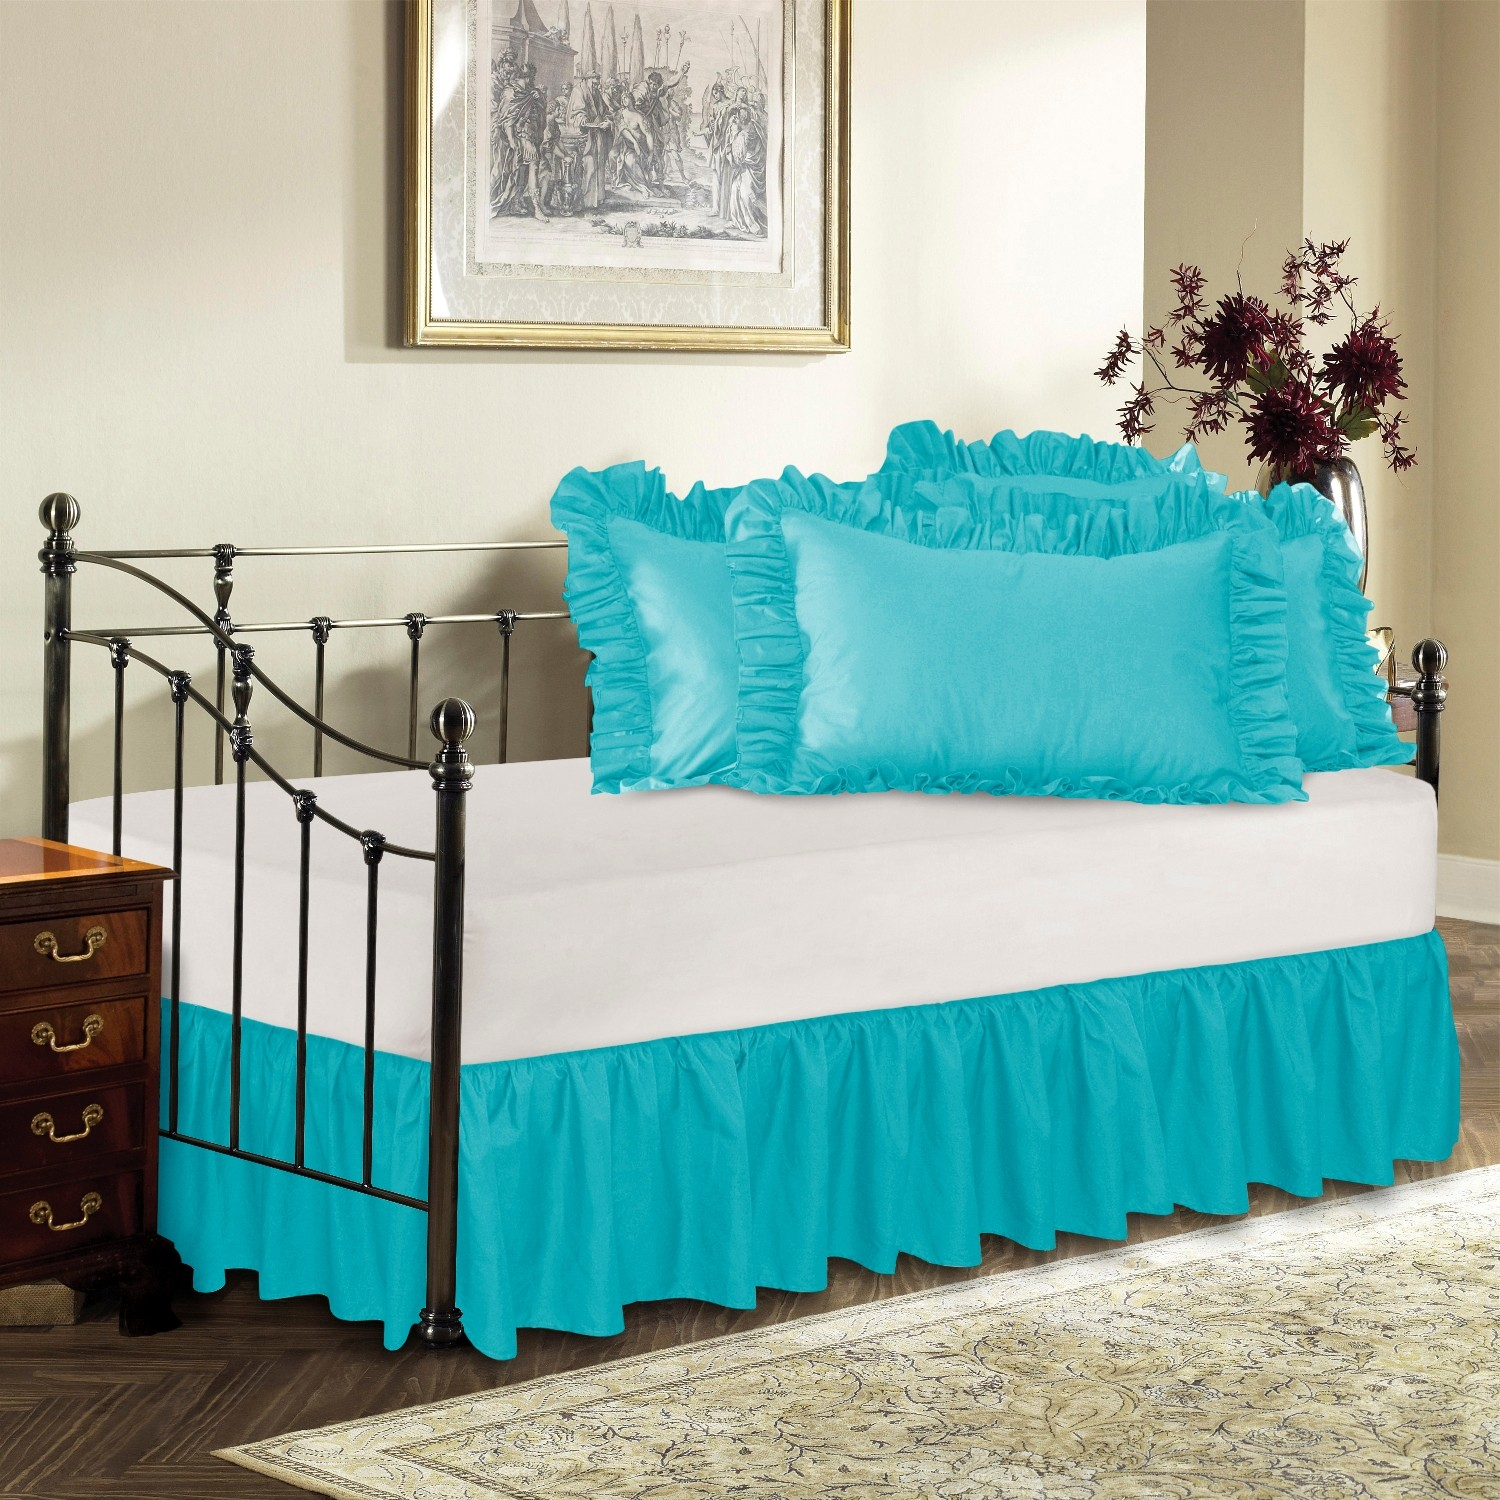 Day Bed Ruffled Skirt Bedding